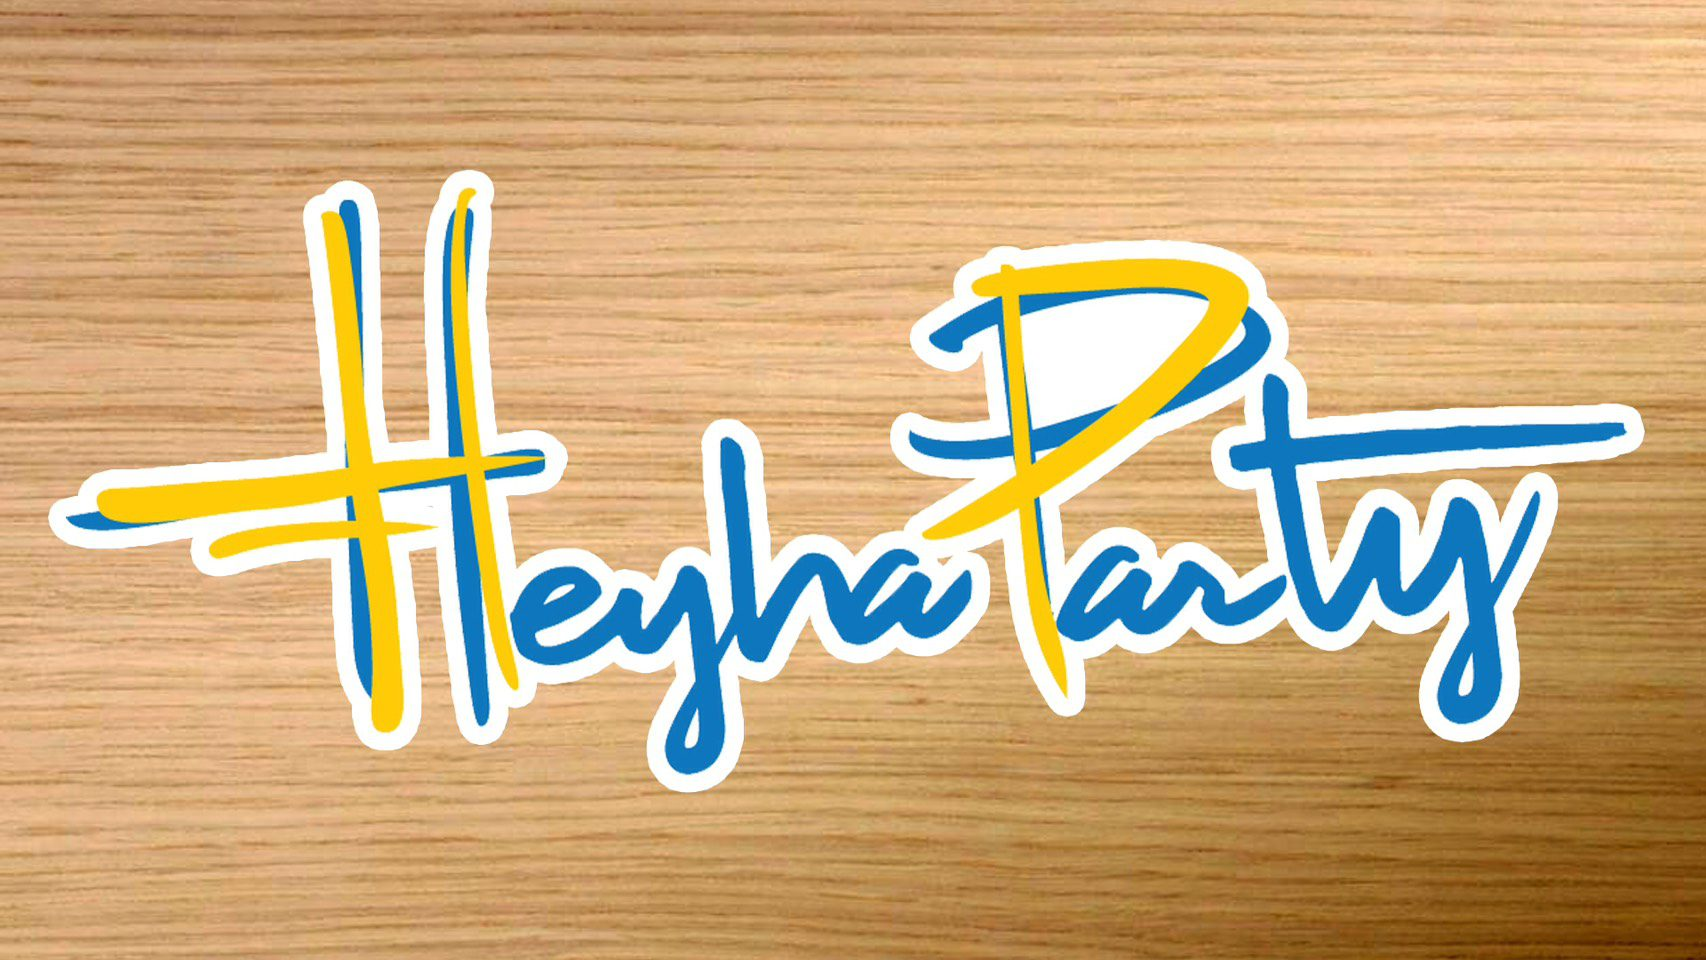 Heyhaparty